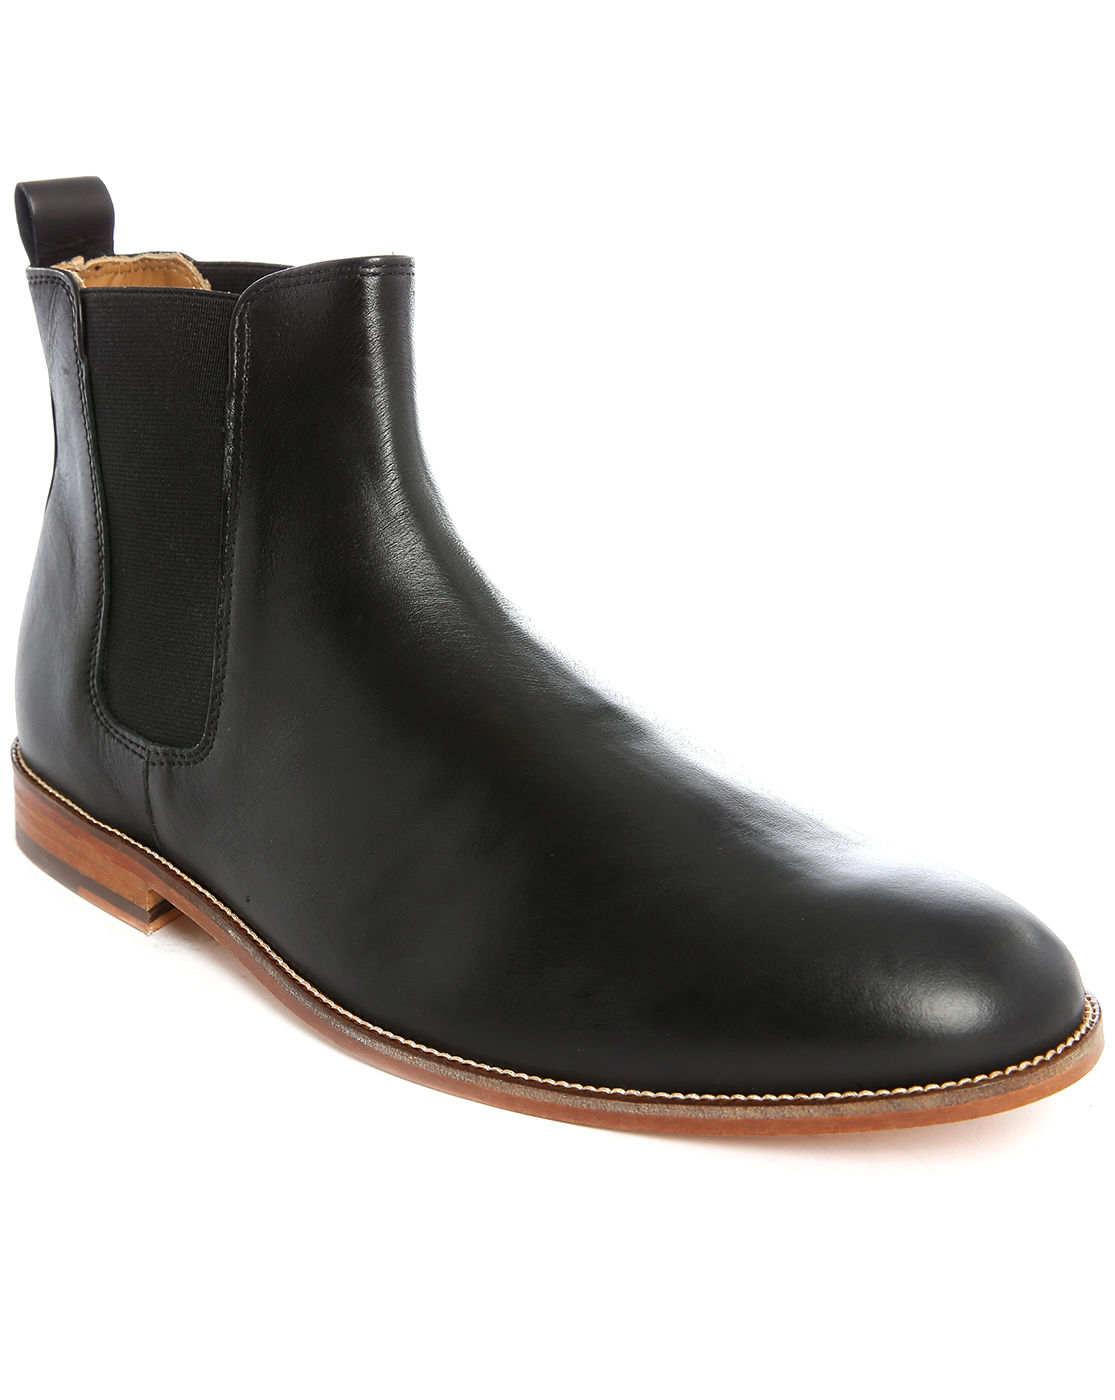 bobbies l 39 horloger black leather chelsea boots in black. Black Bedroom Furniture Sets. Home Design Ideas